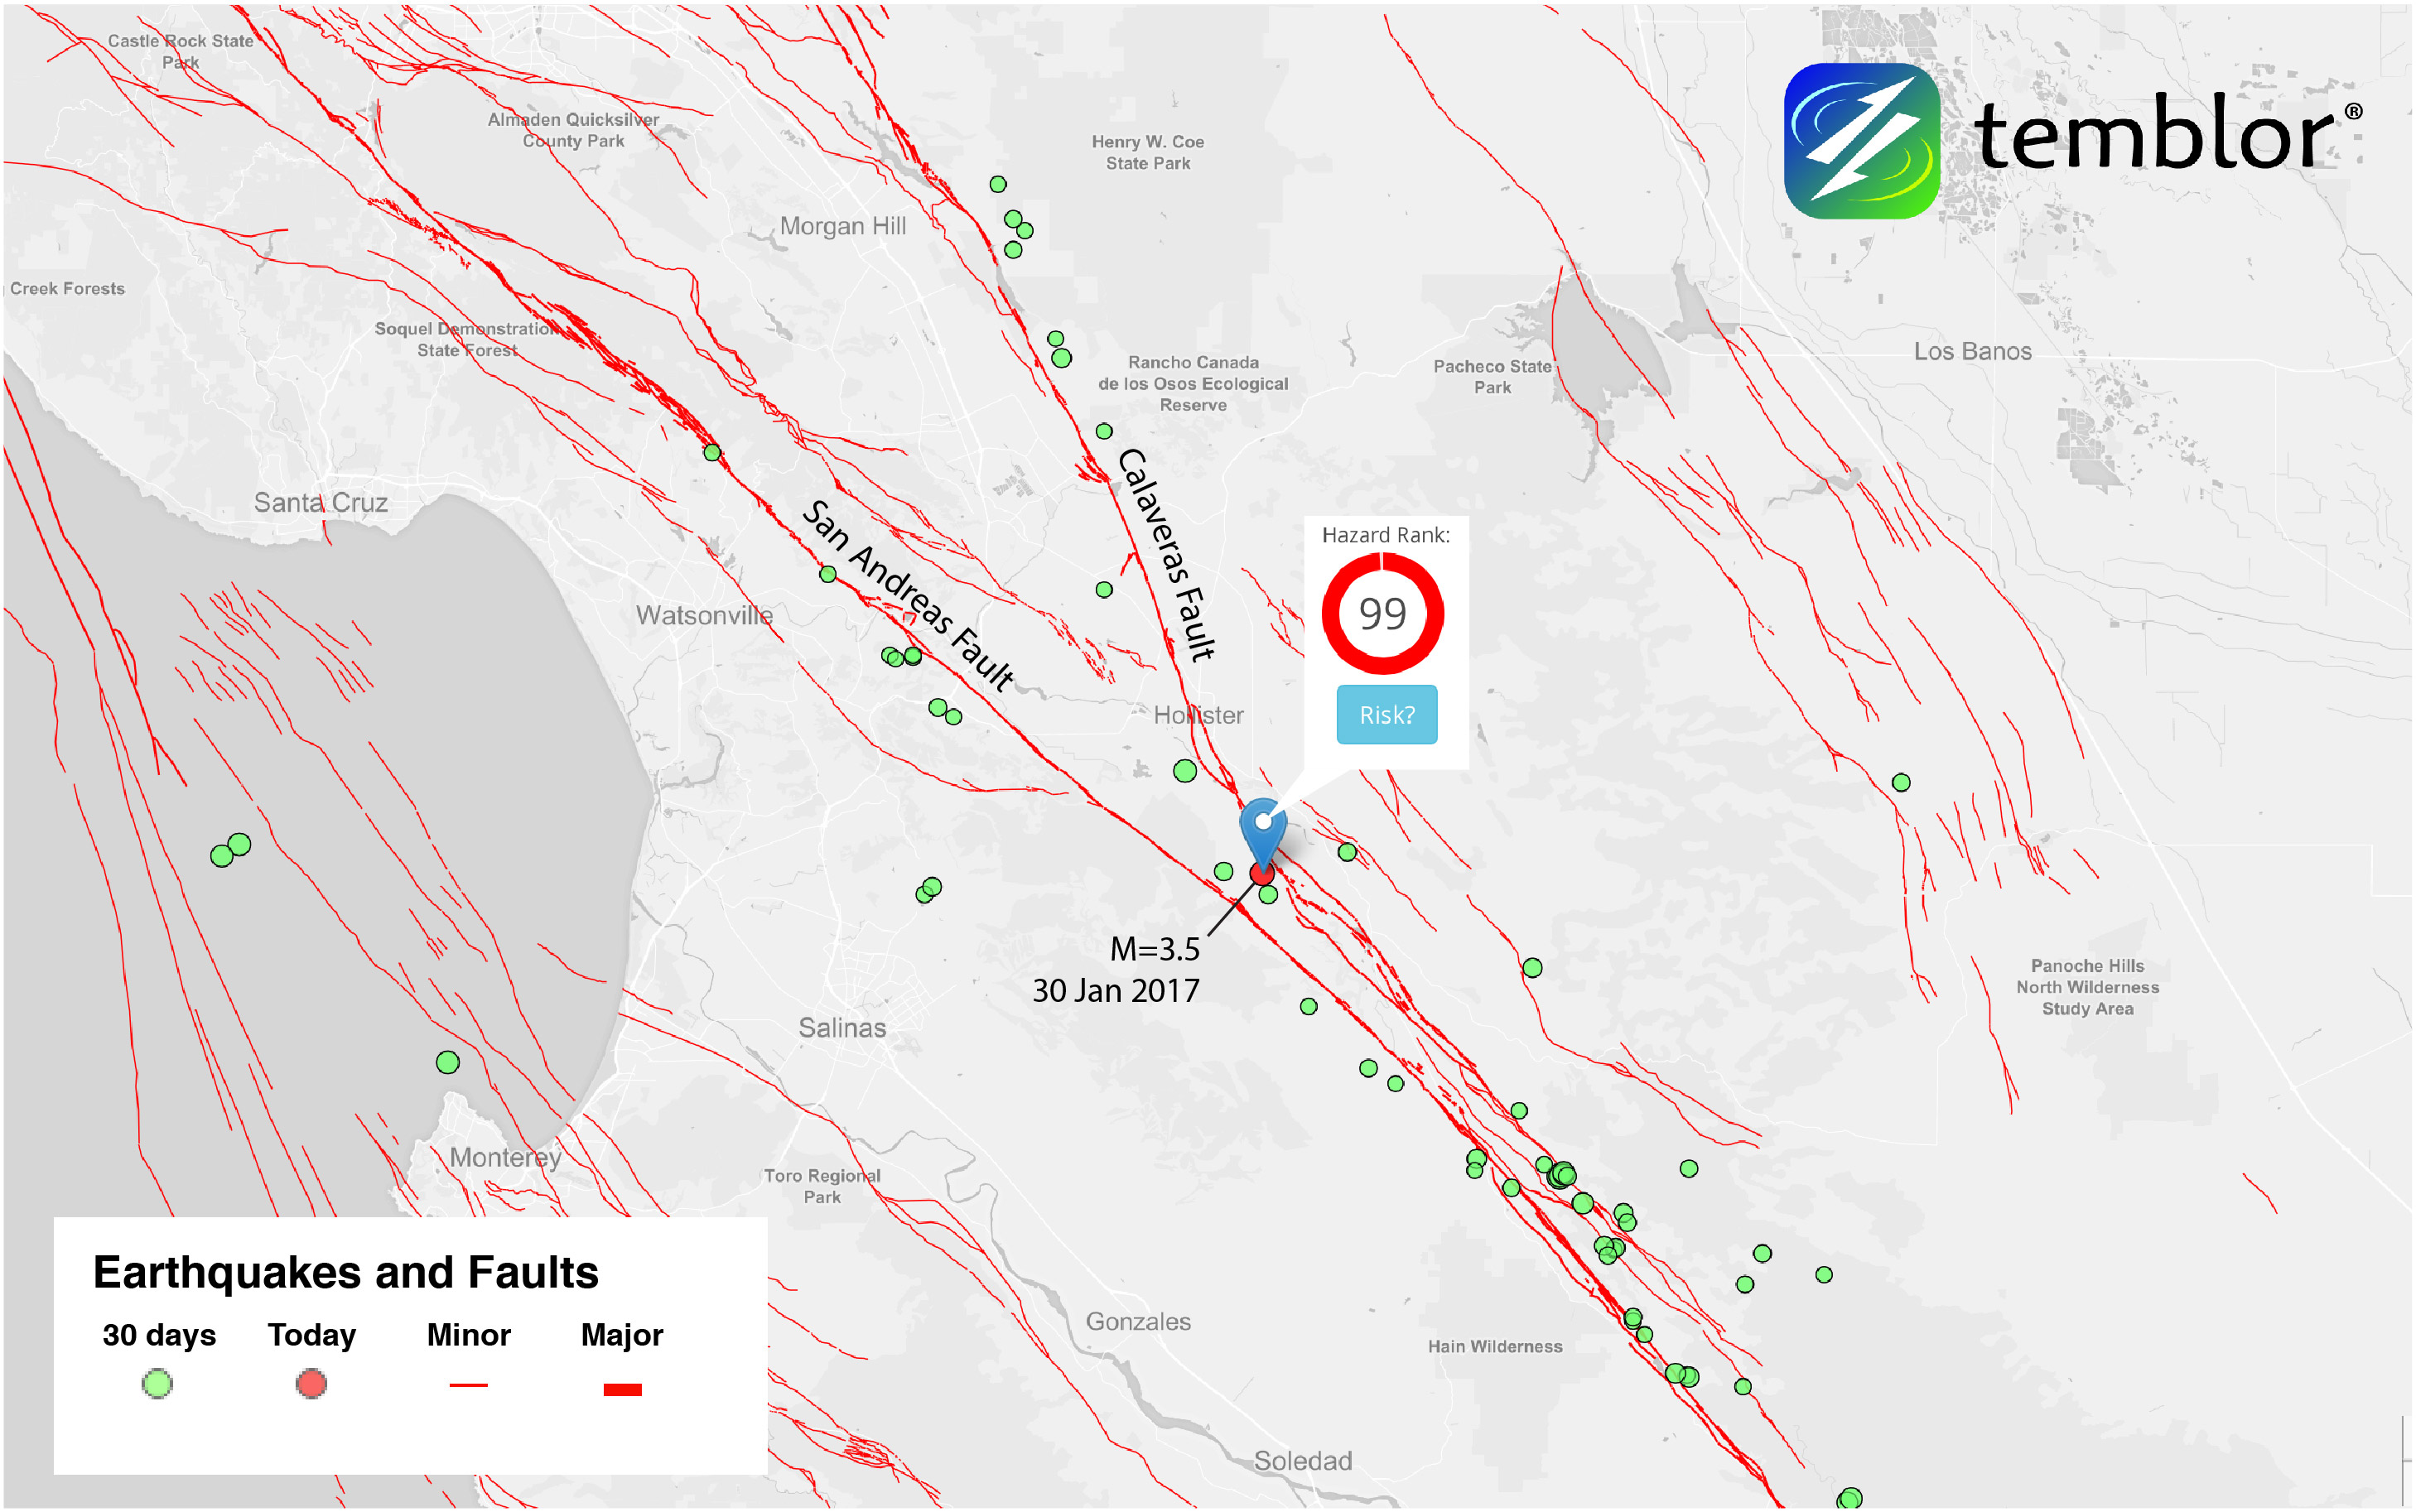 san-andreas-fault-map-calaveras-fault-map-california-earthquake